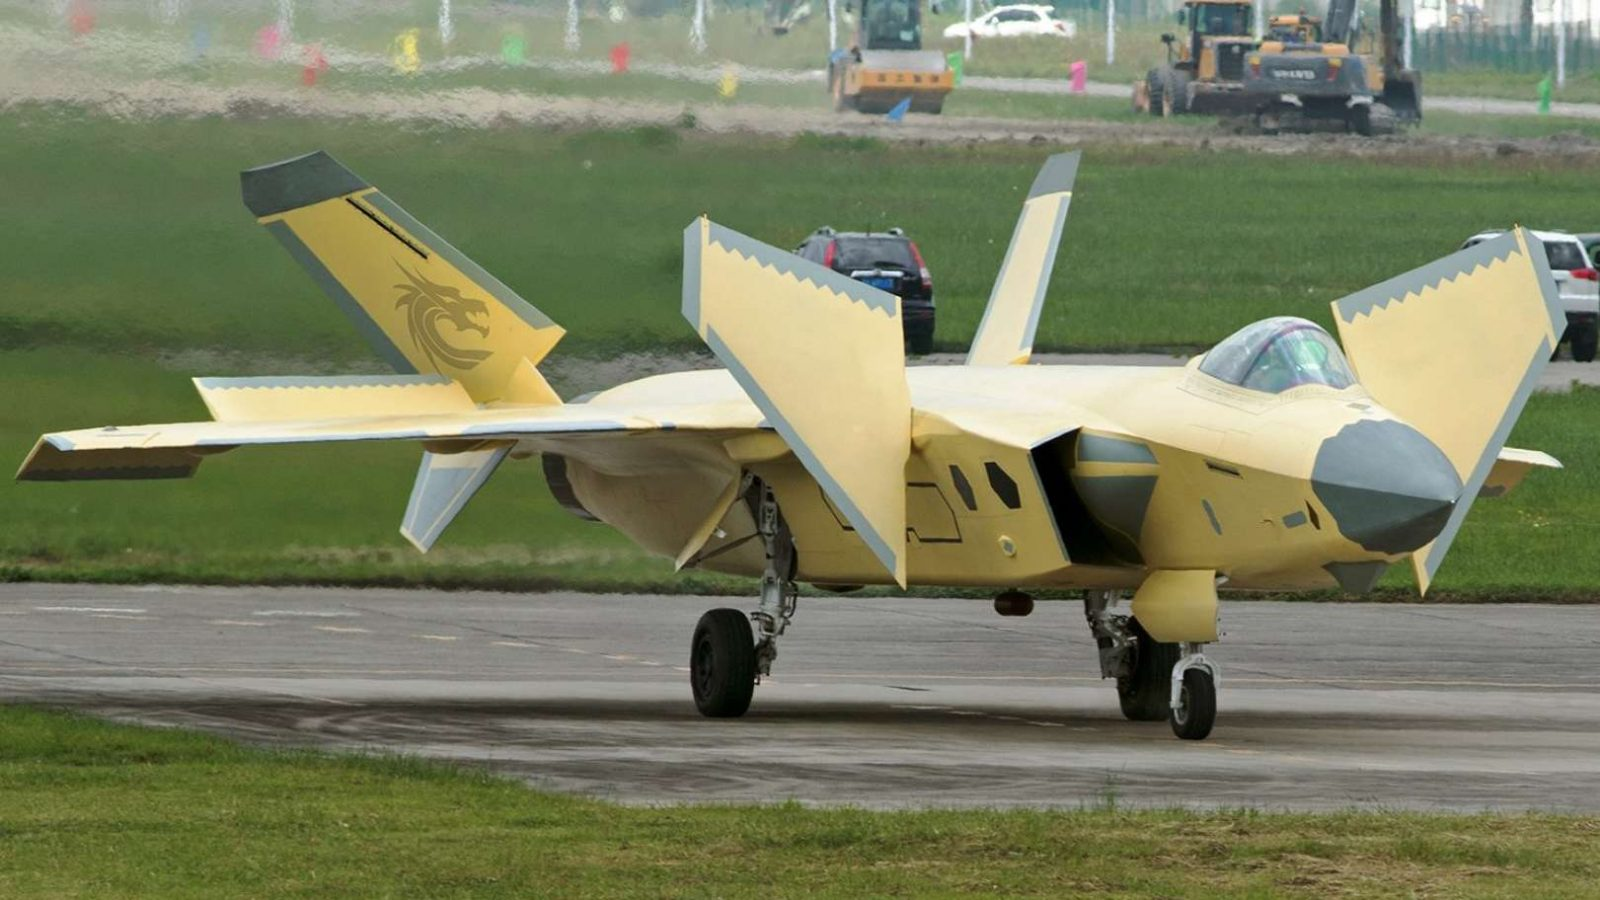 Latest Shots of Unpainted J-20 Stealth Fighter provide Insights about New Capability 1